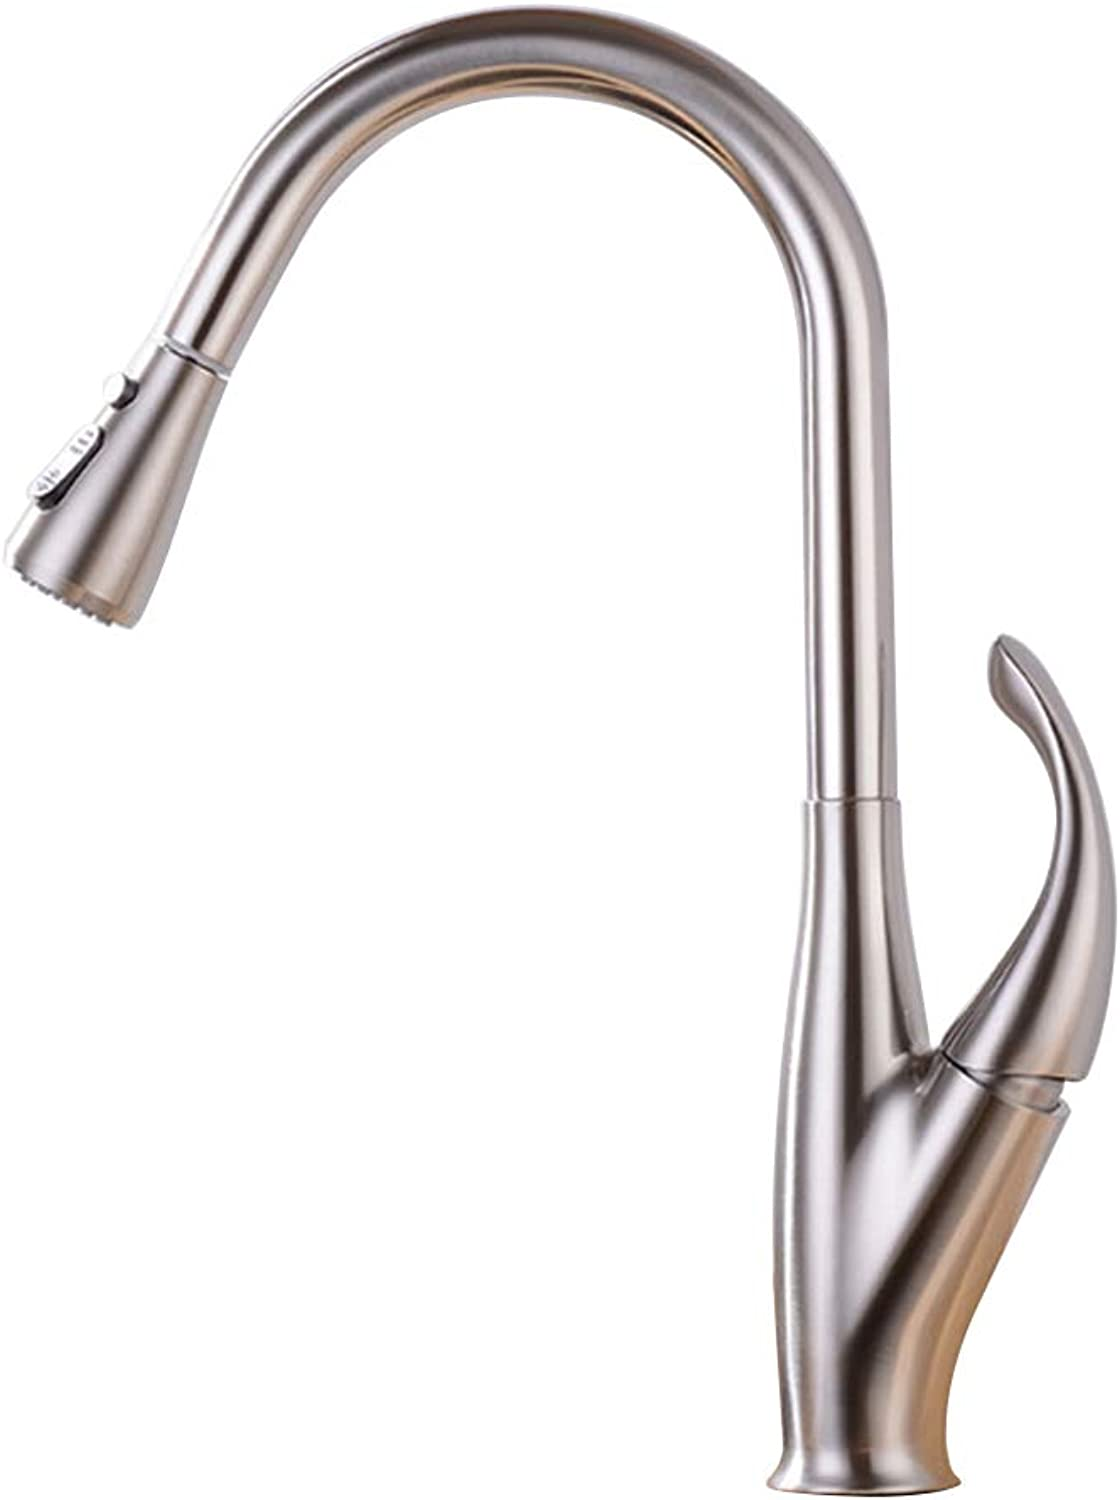 Kitchen Sink Faucets Single Handle Single Hole Swivel 360 Degree Pull Out 3 Functions Water Mixer Tap Brass,Silver